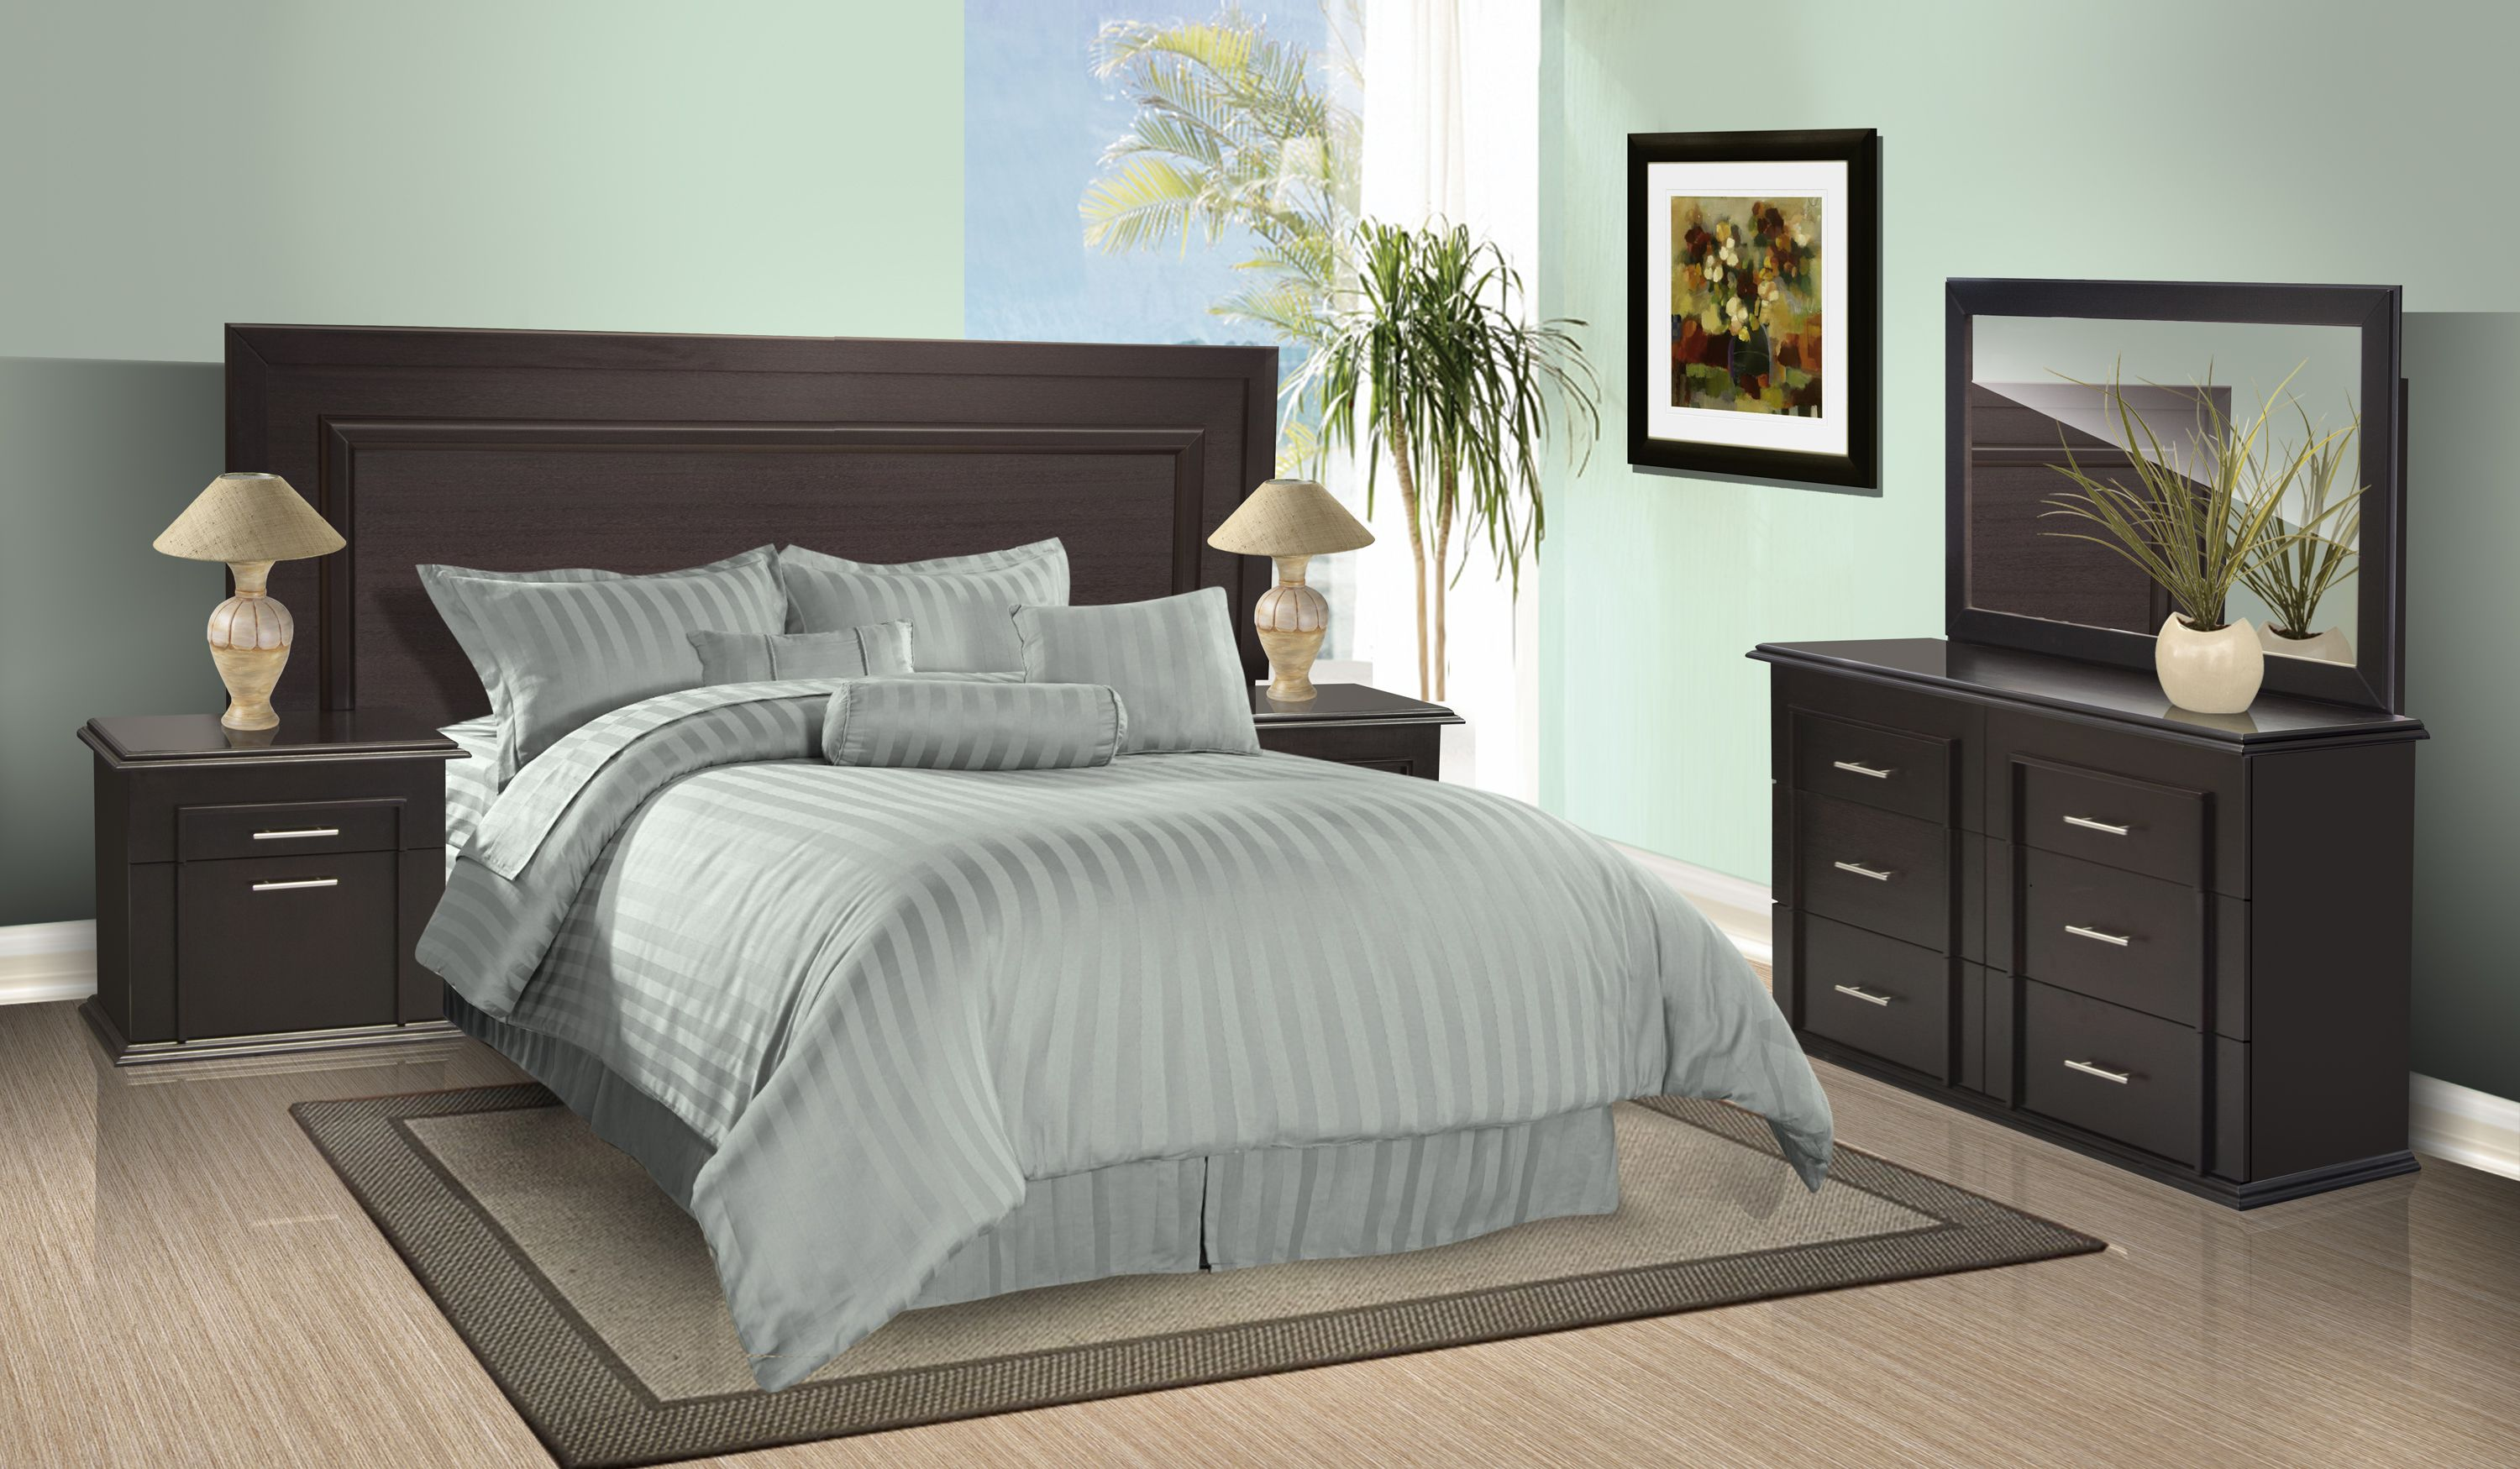 Lillian Russell Bedroom Suite Value Intercasherfo Online Auction For Cherry 5 Piece Bedroom Set Bedroom Set Bedroom Sets